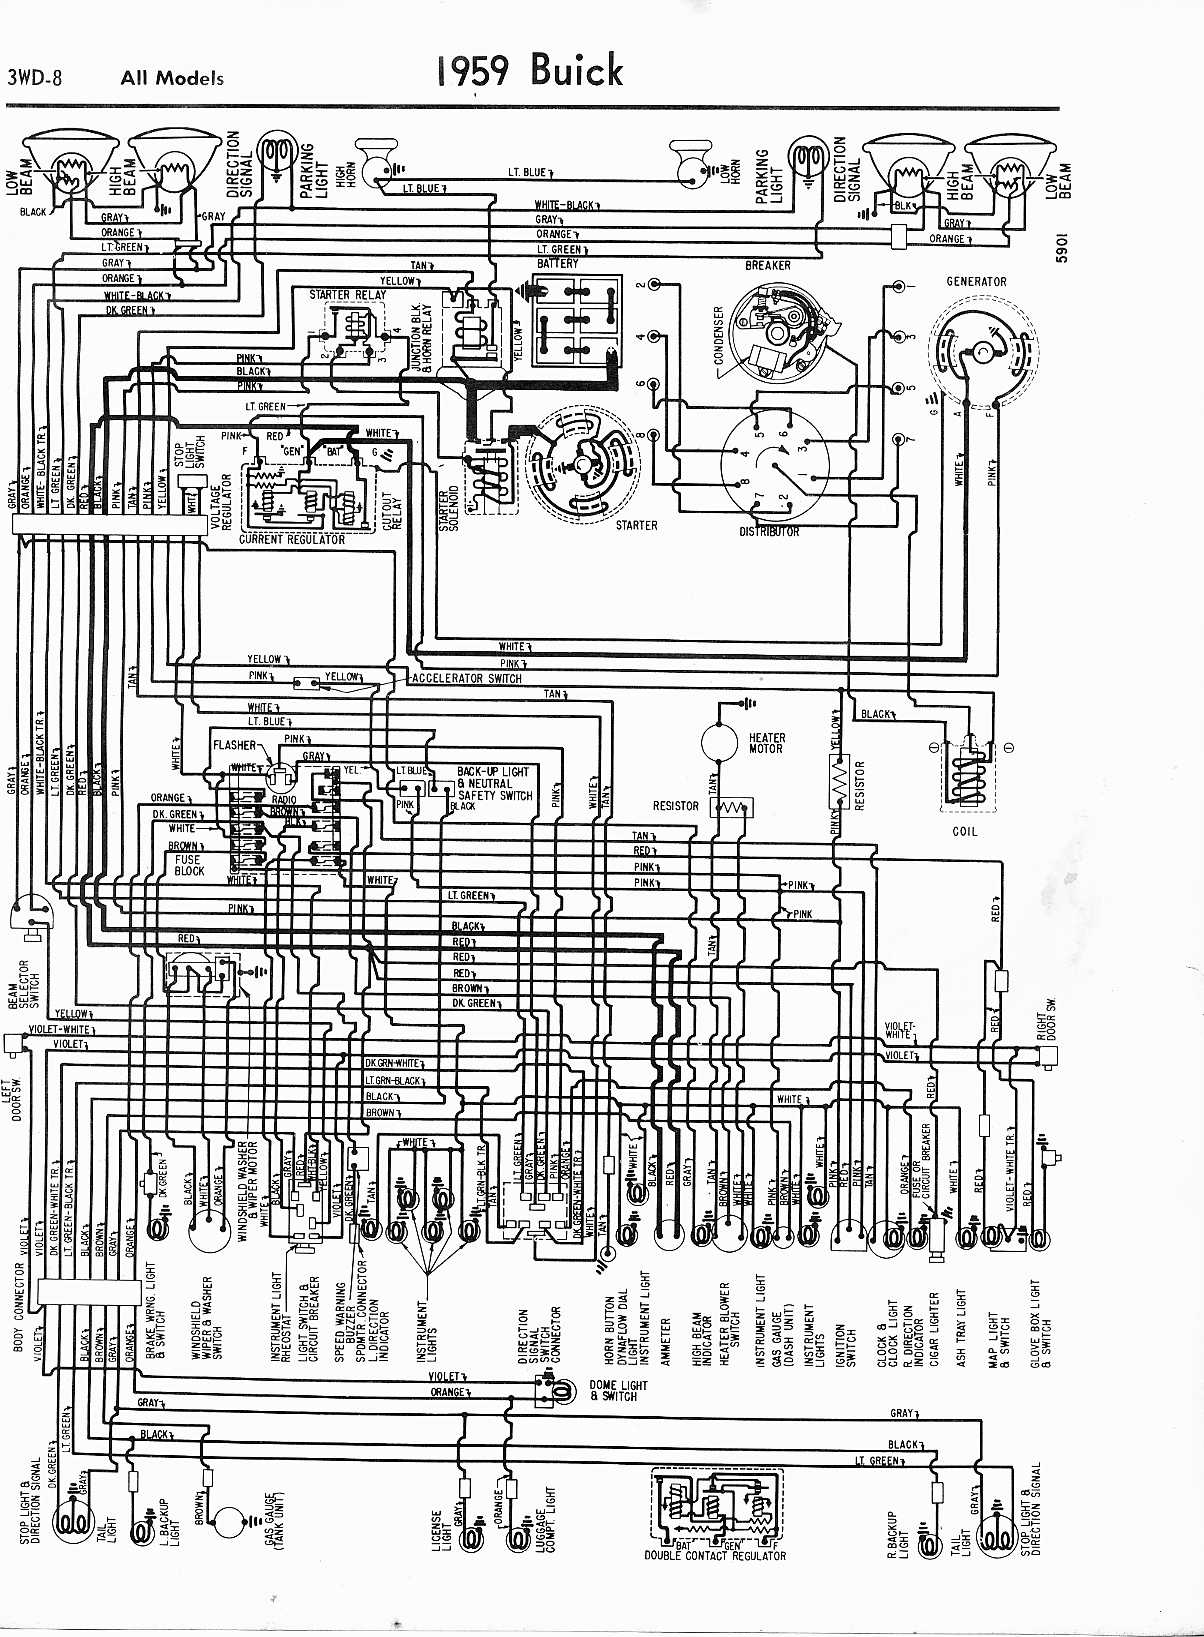 1960 Buick Wiring Diagram Schemes Stereo For 2003 Century Diagrams 1957 1965 Rh Oldcarmanualproject Com Lesabre